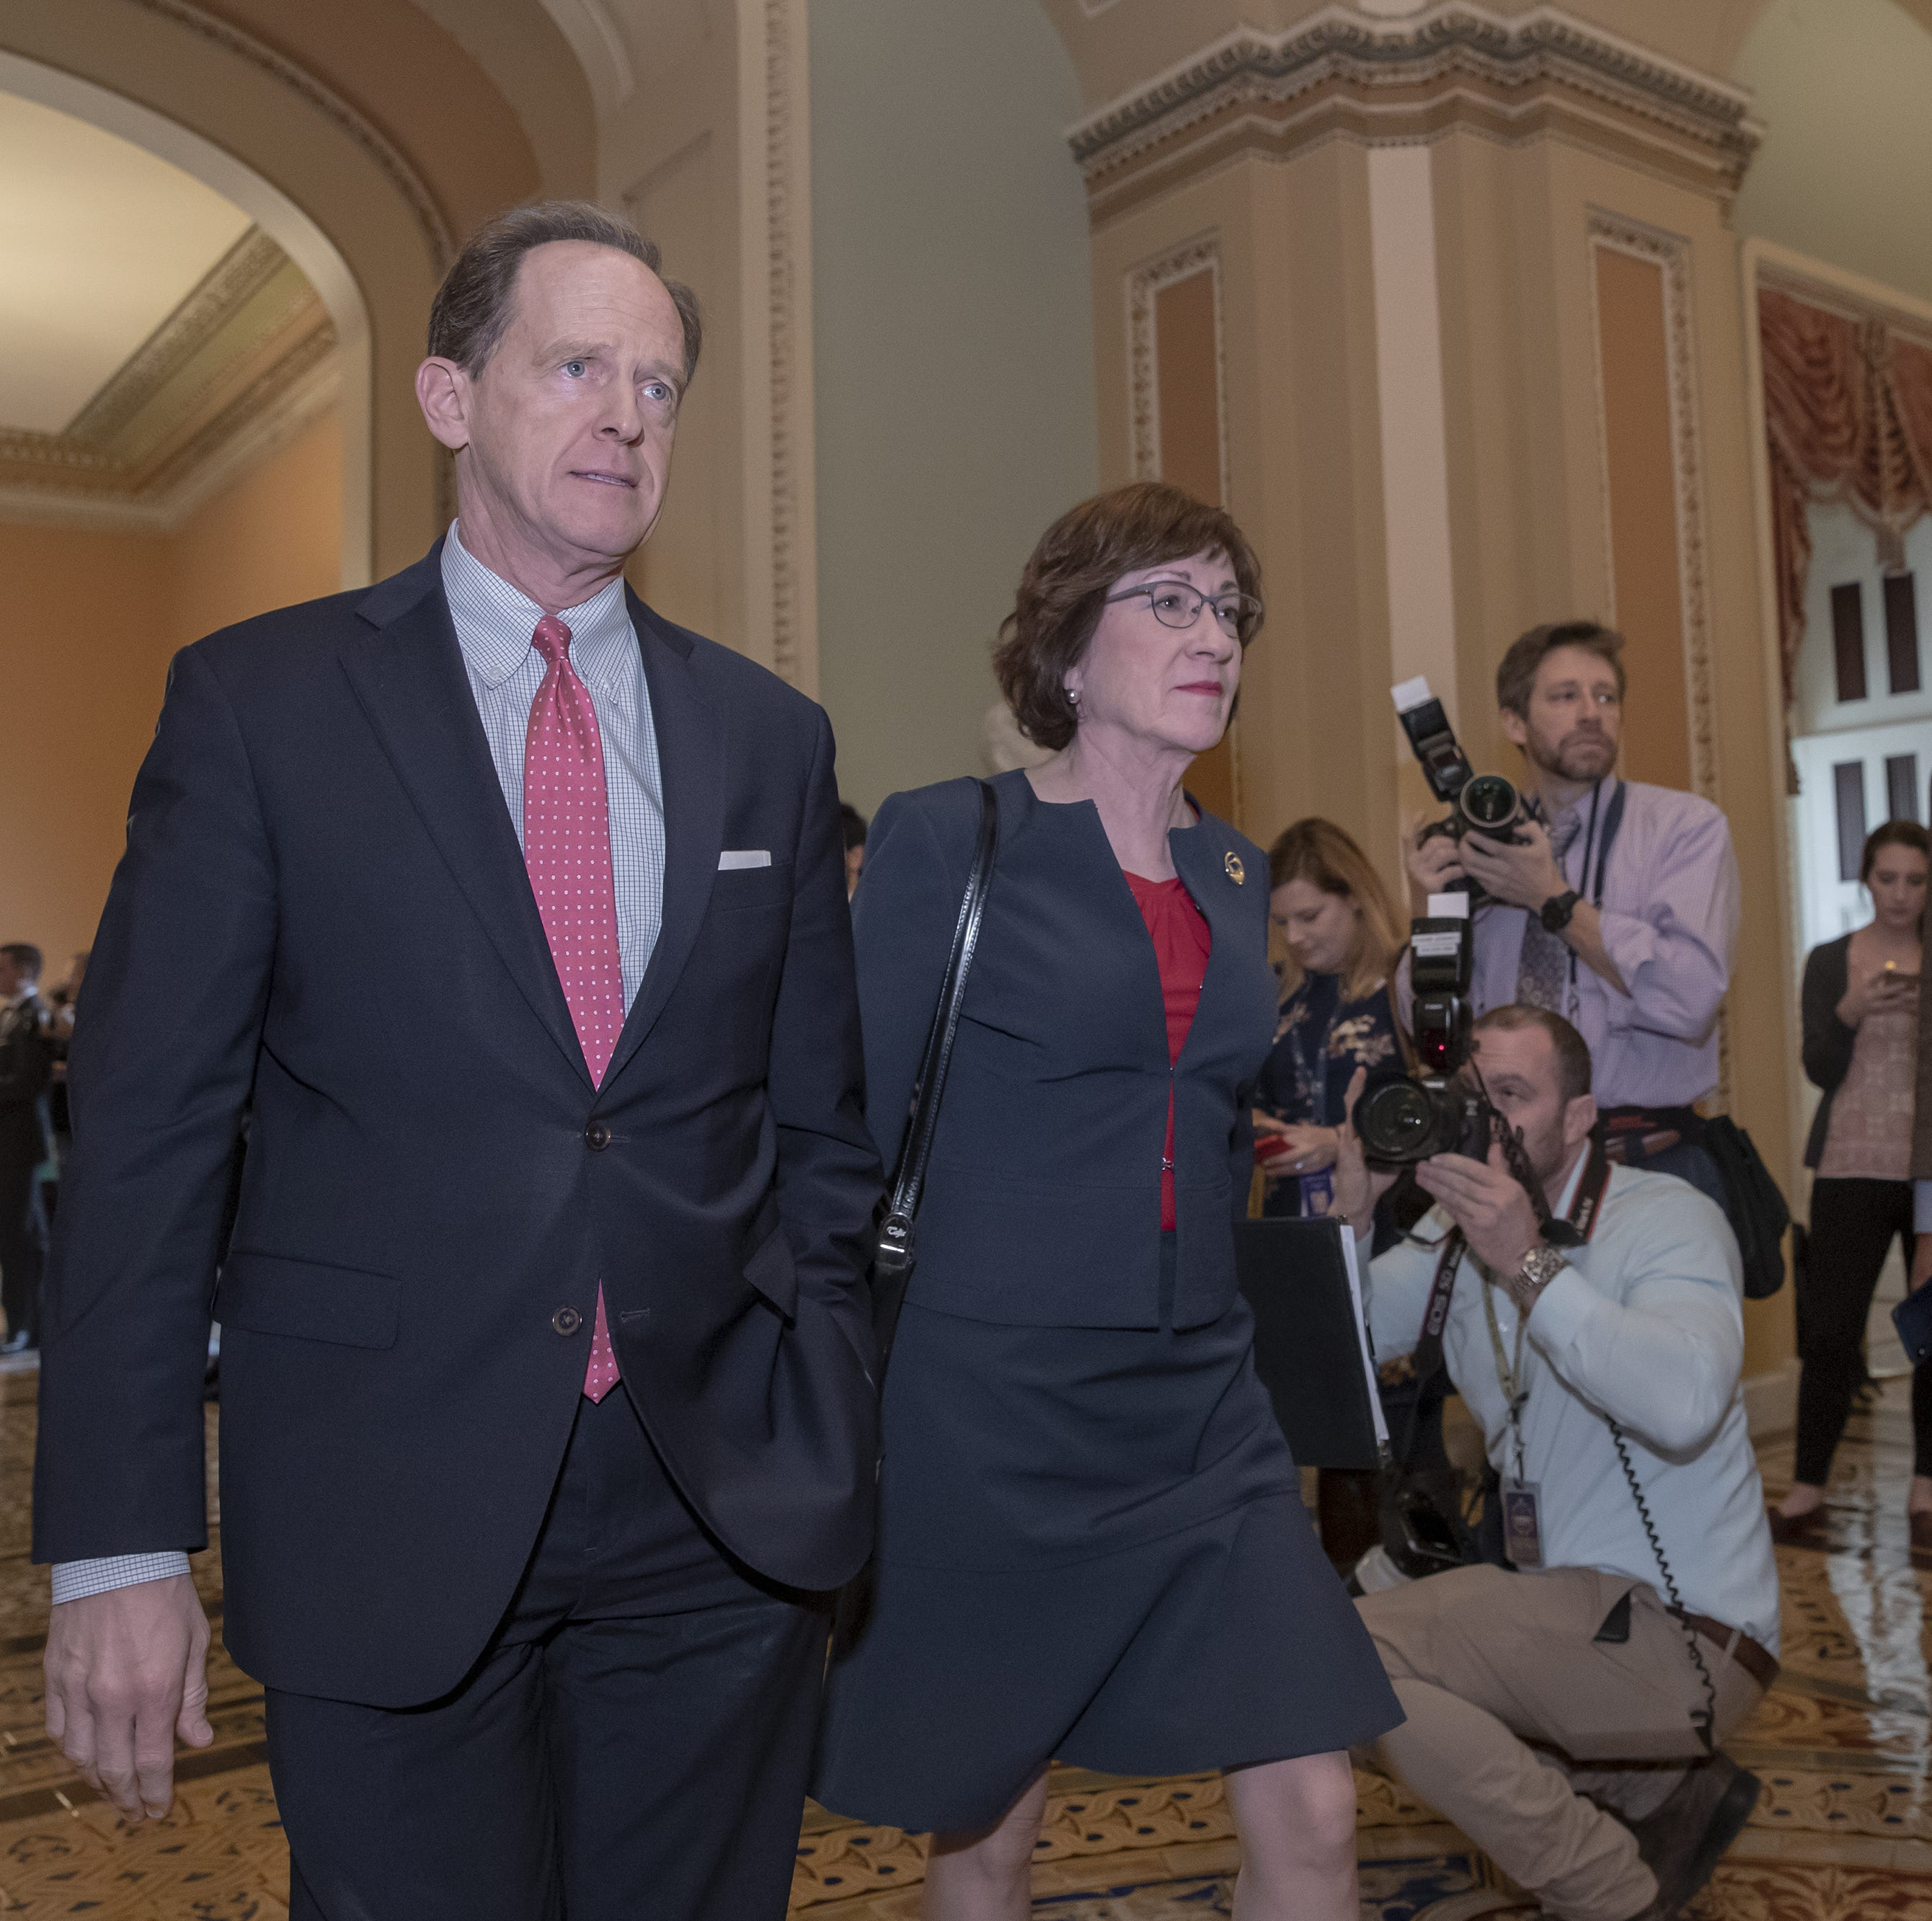 Sen. Pat Toomey, R-Pa., left, and Sen. Susan Collins, R-Maine, walk to the chamber for two votes that could end the government shutdown, at the Capitol in Washington, Thursday, Jan. 24, 2019. Both measures failed, as the partial government shutdown continues. (AP Photo/J. Scott Applewhite)